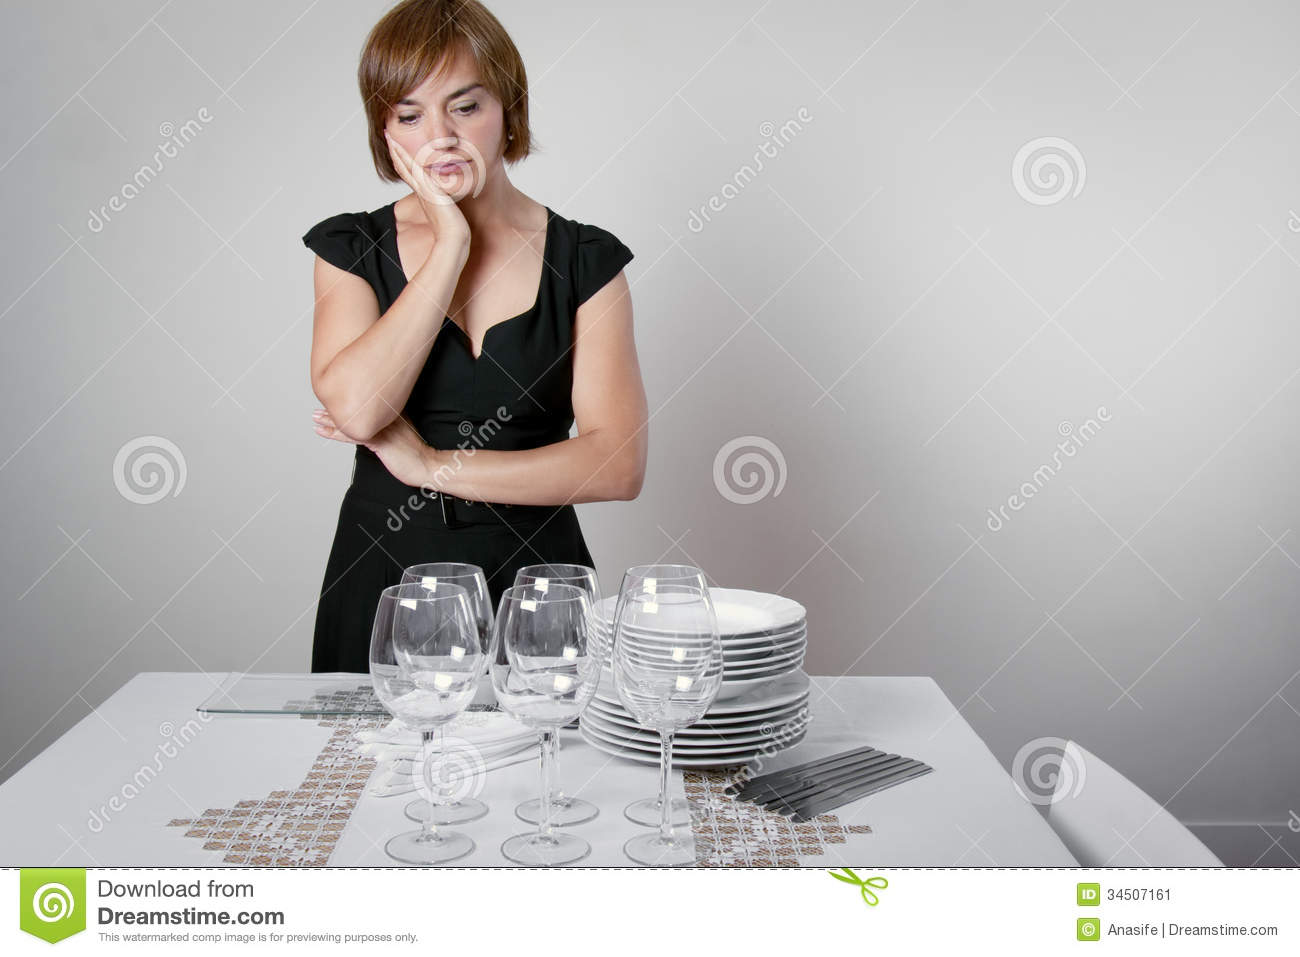 Worried woman setting the table